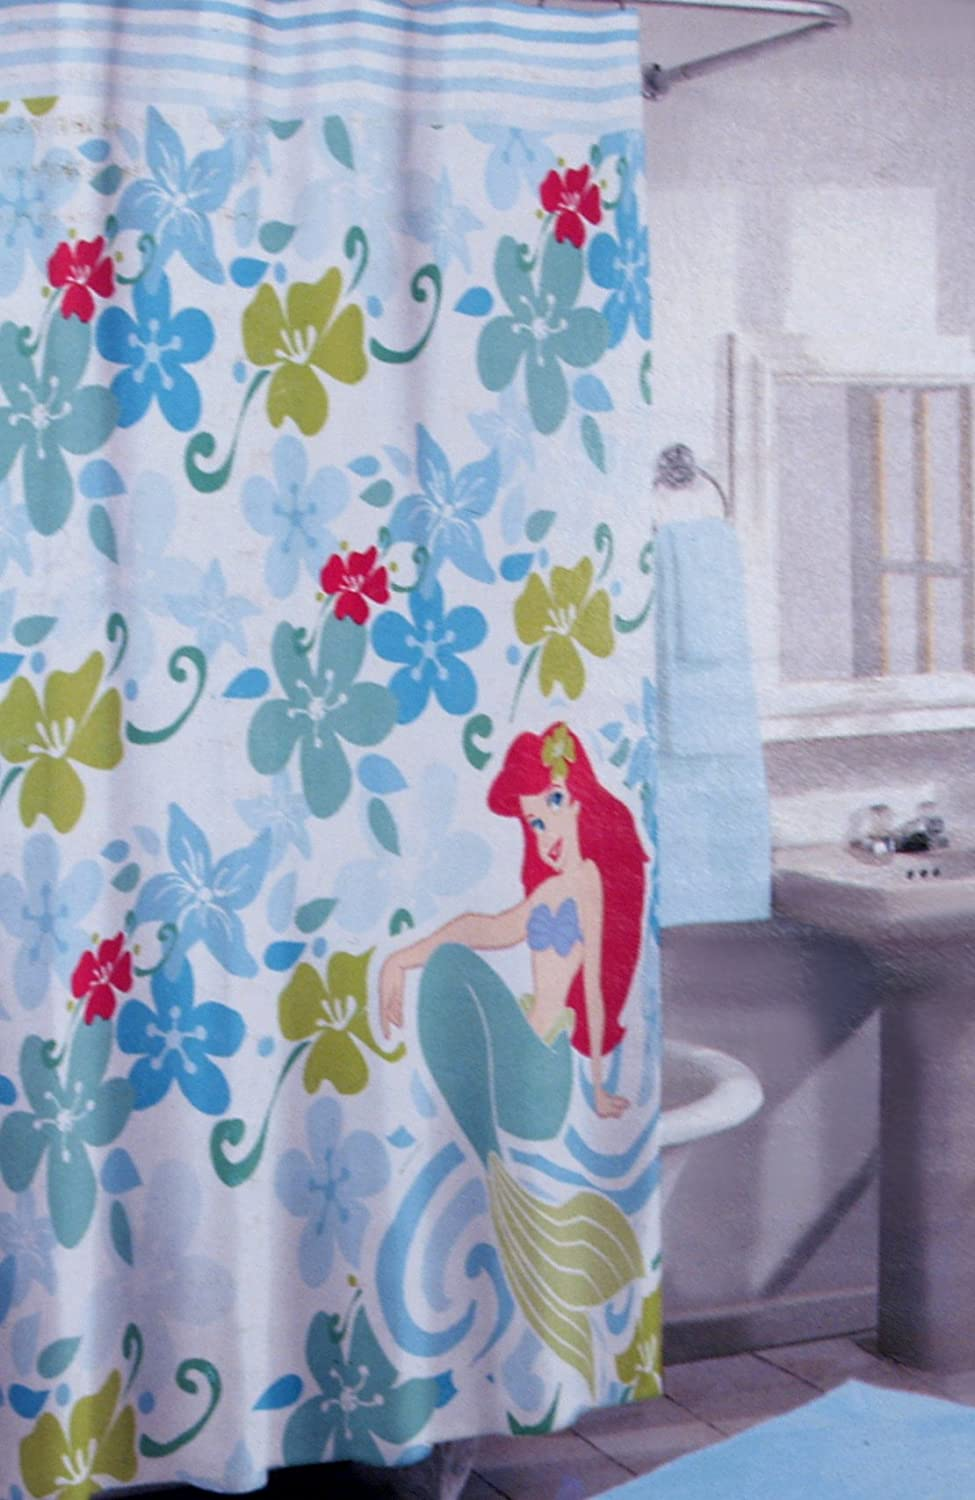 Amazon.com: Disneyu0027s Little Mermaid 100% Cotton Shower Curtain: Home U0026  Kitchen